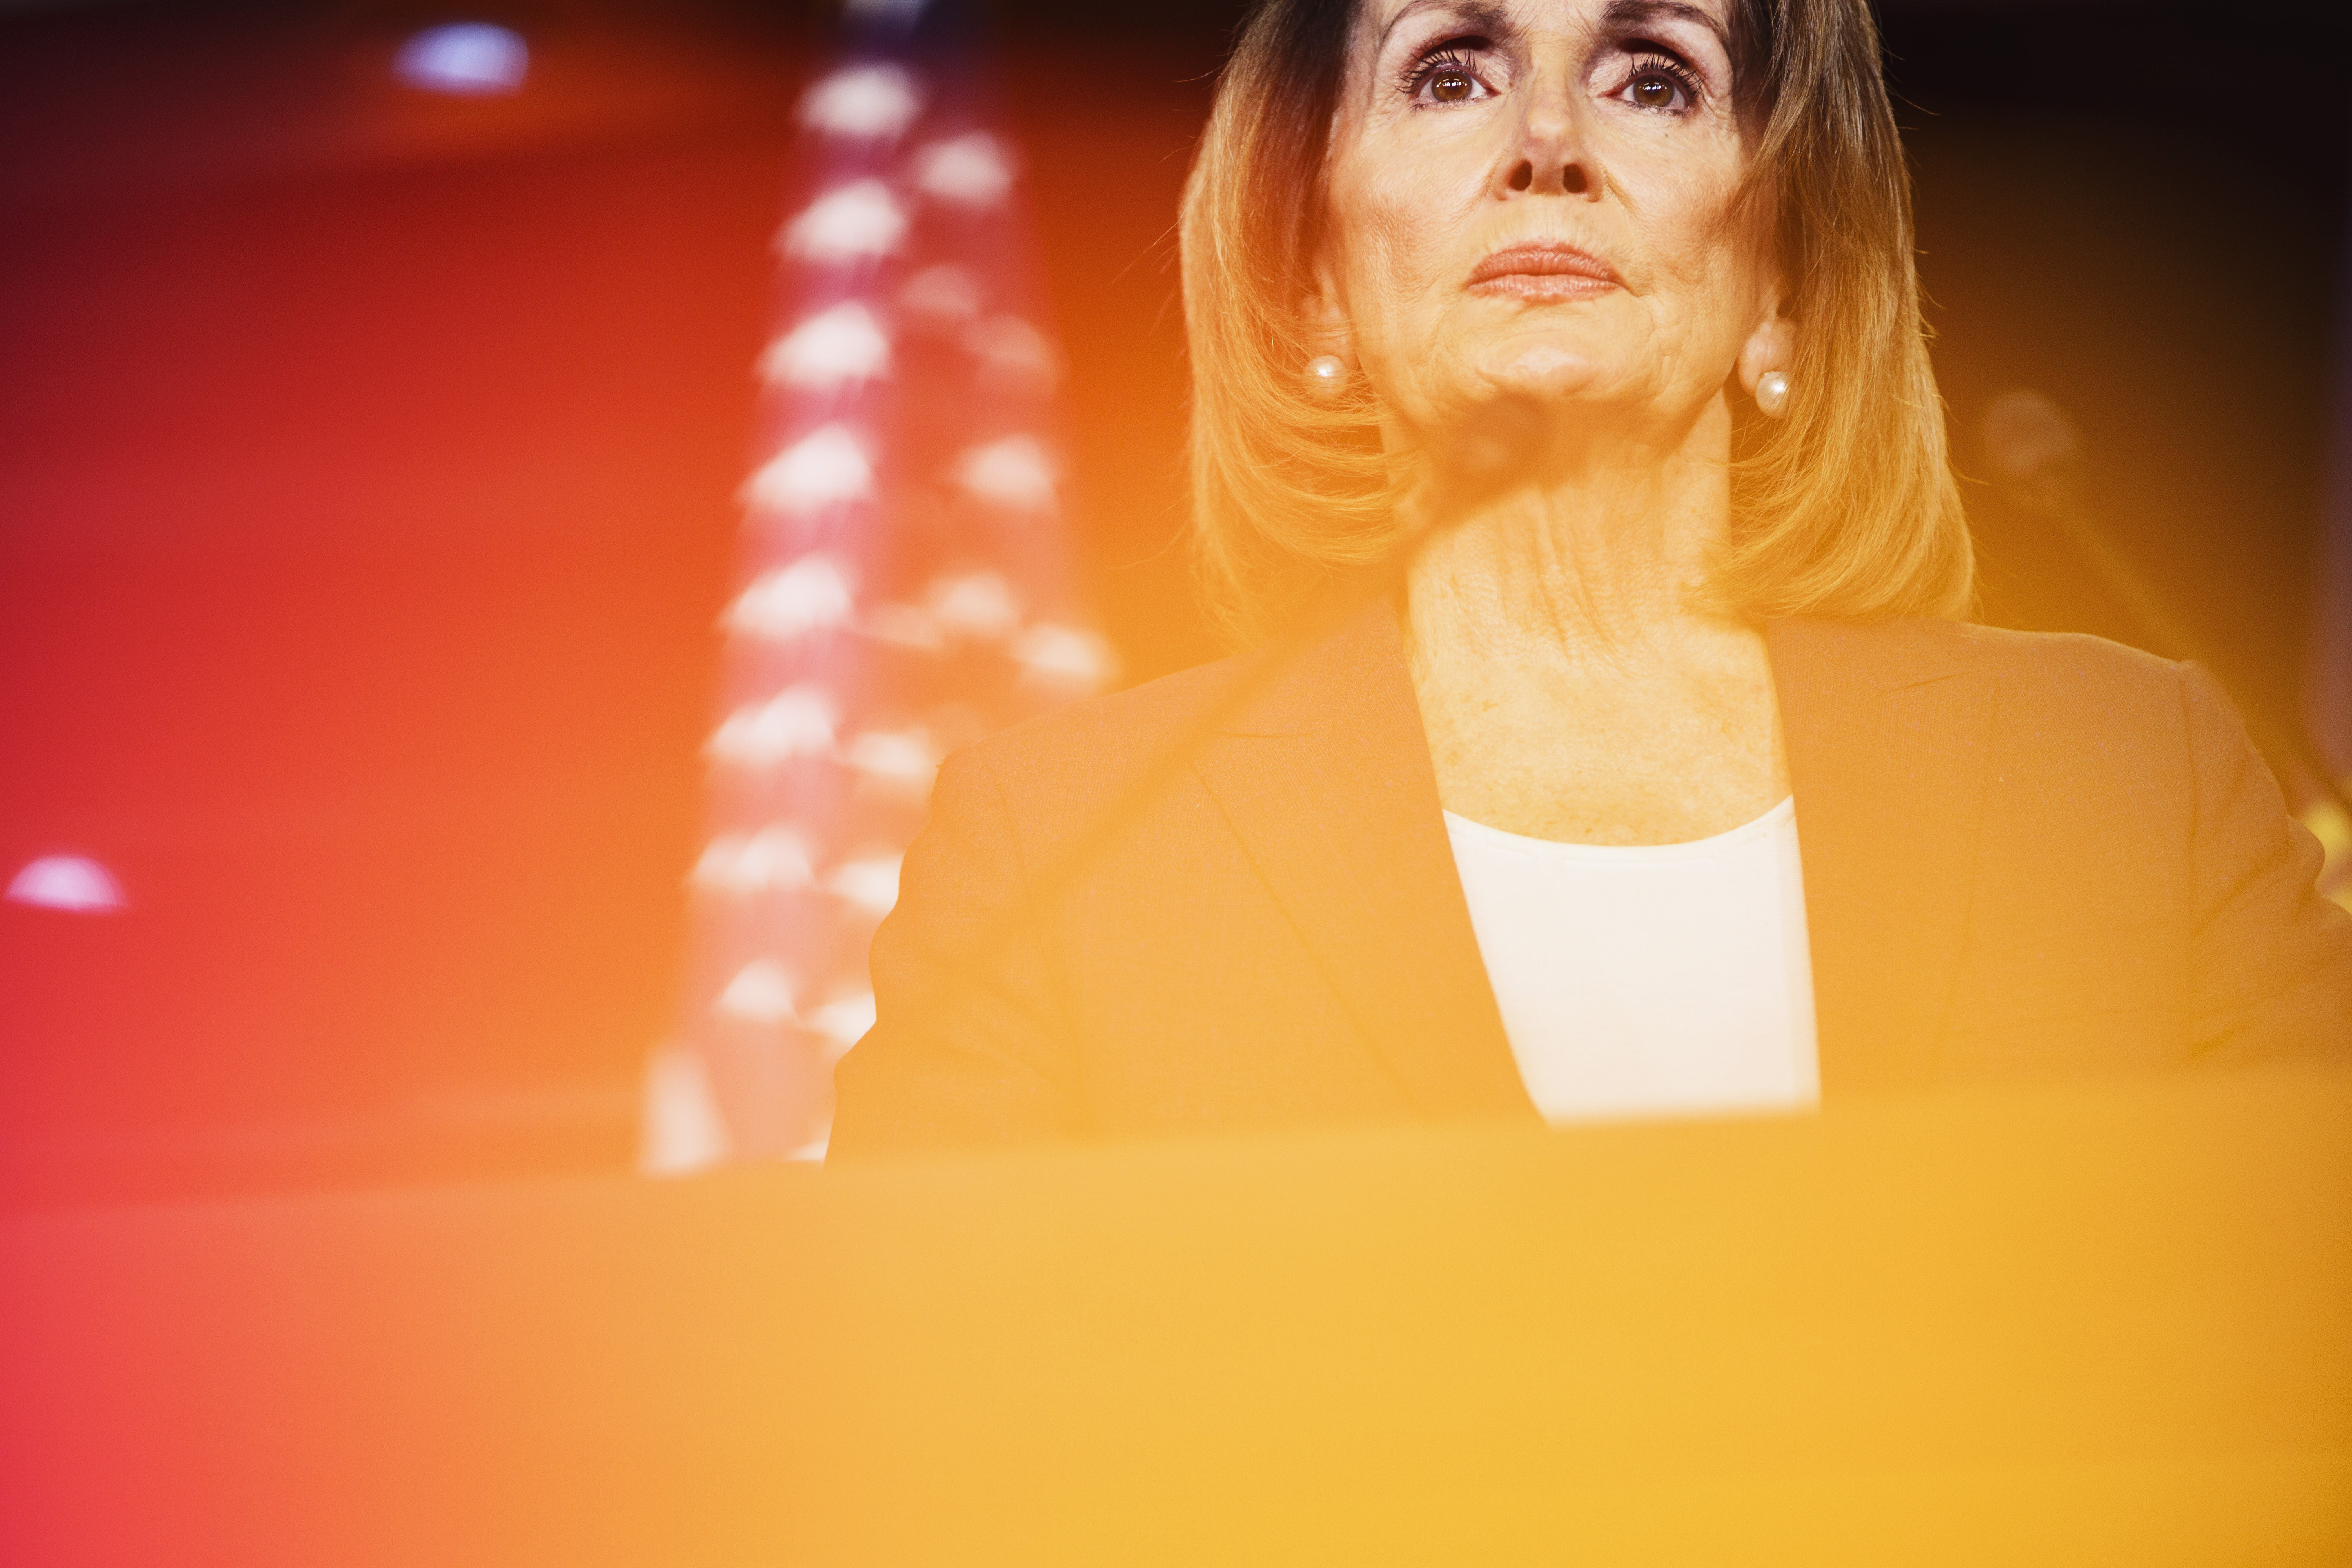 Nancy Pelosi: A daughter of Baltimore who's now walking all over Trump